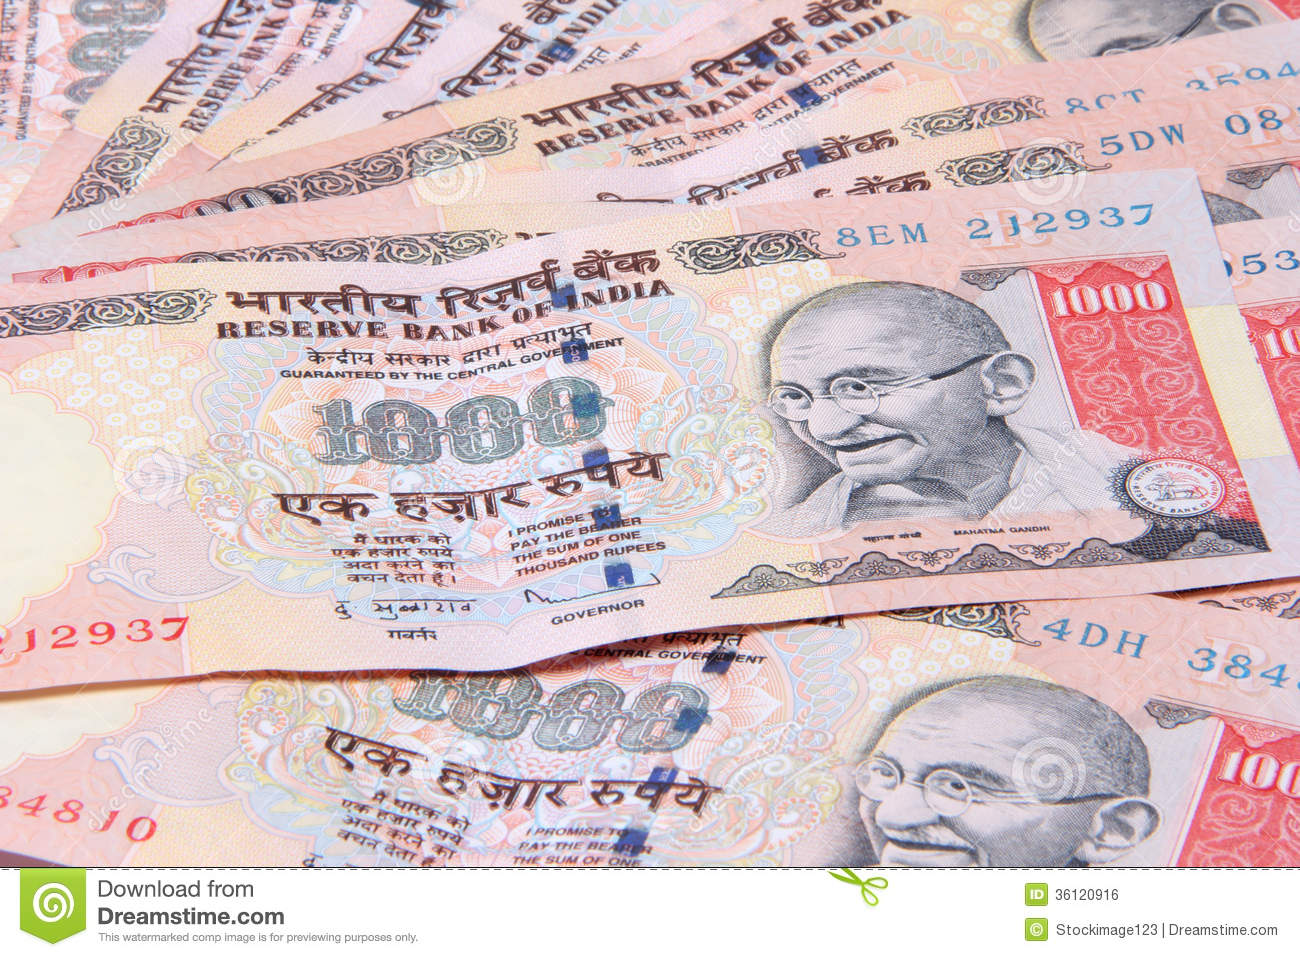 Download Images Of Indian Rupees